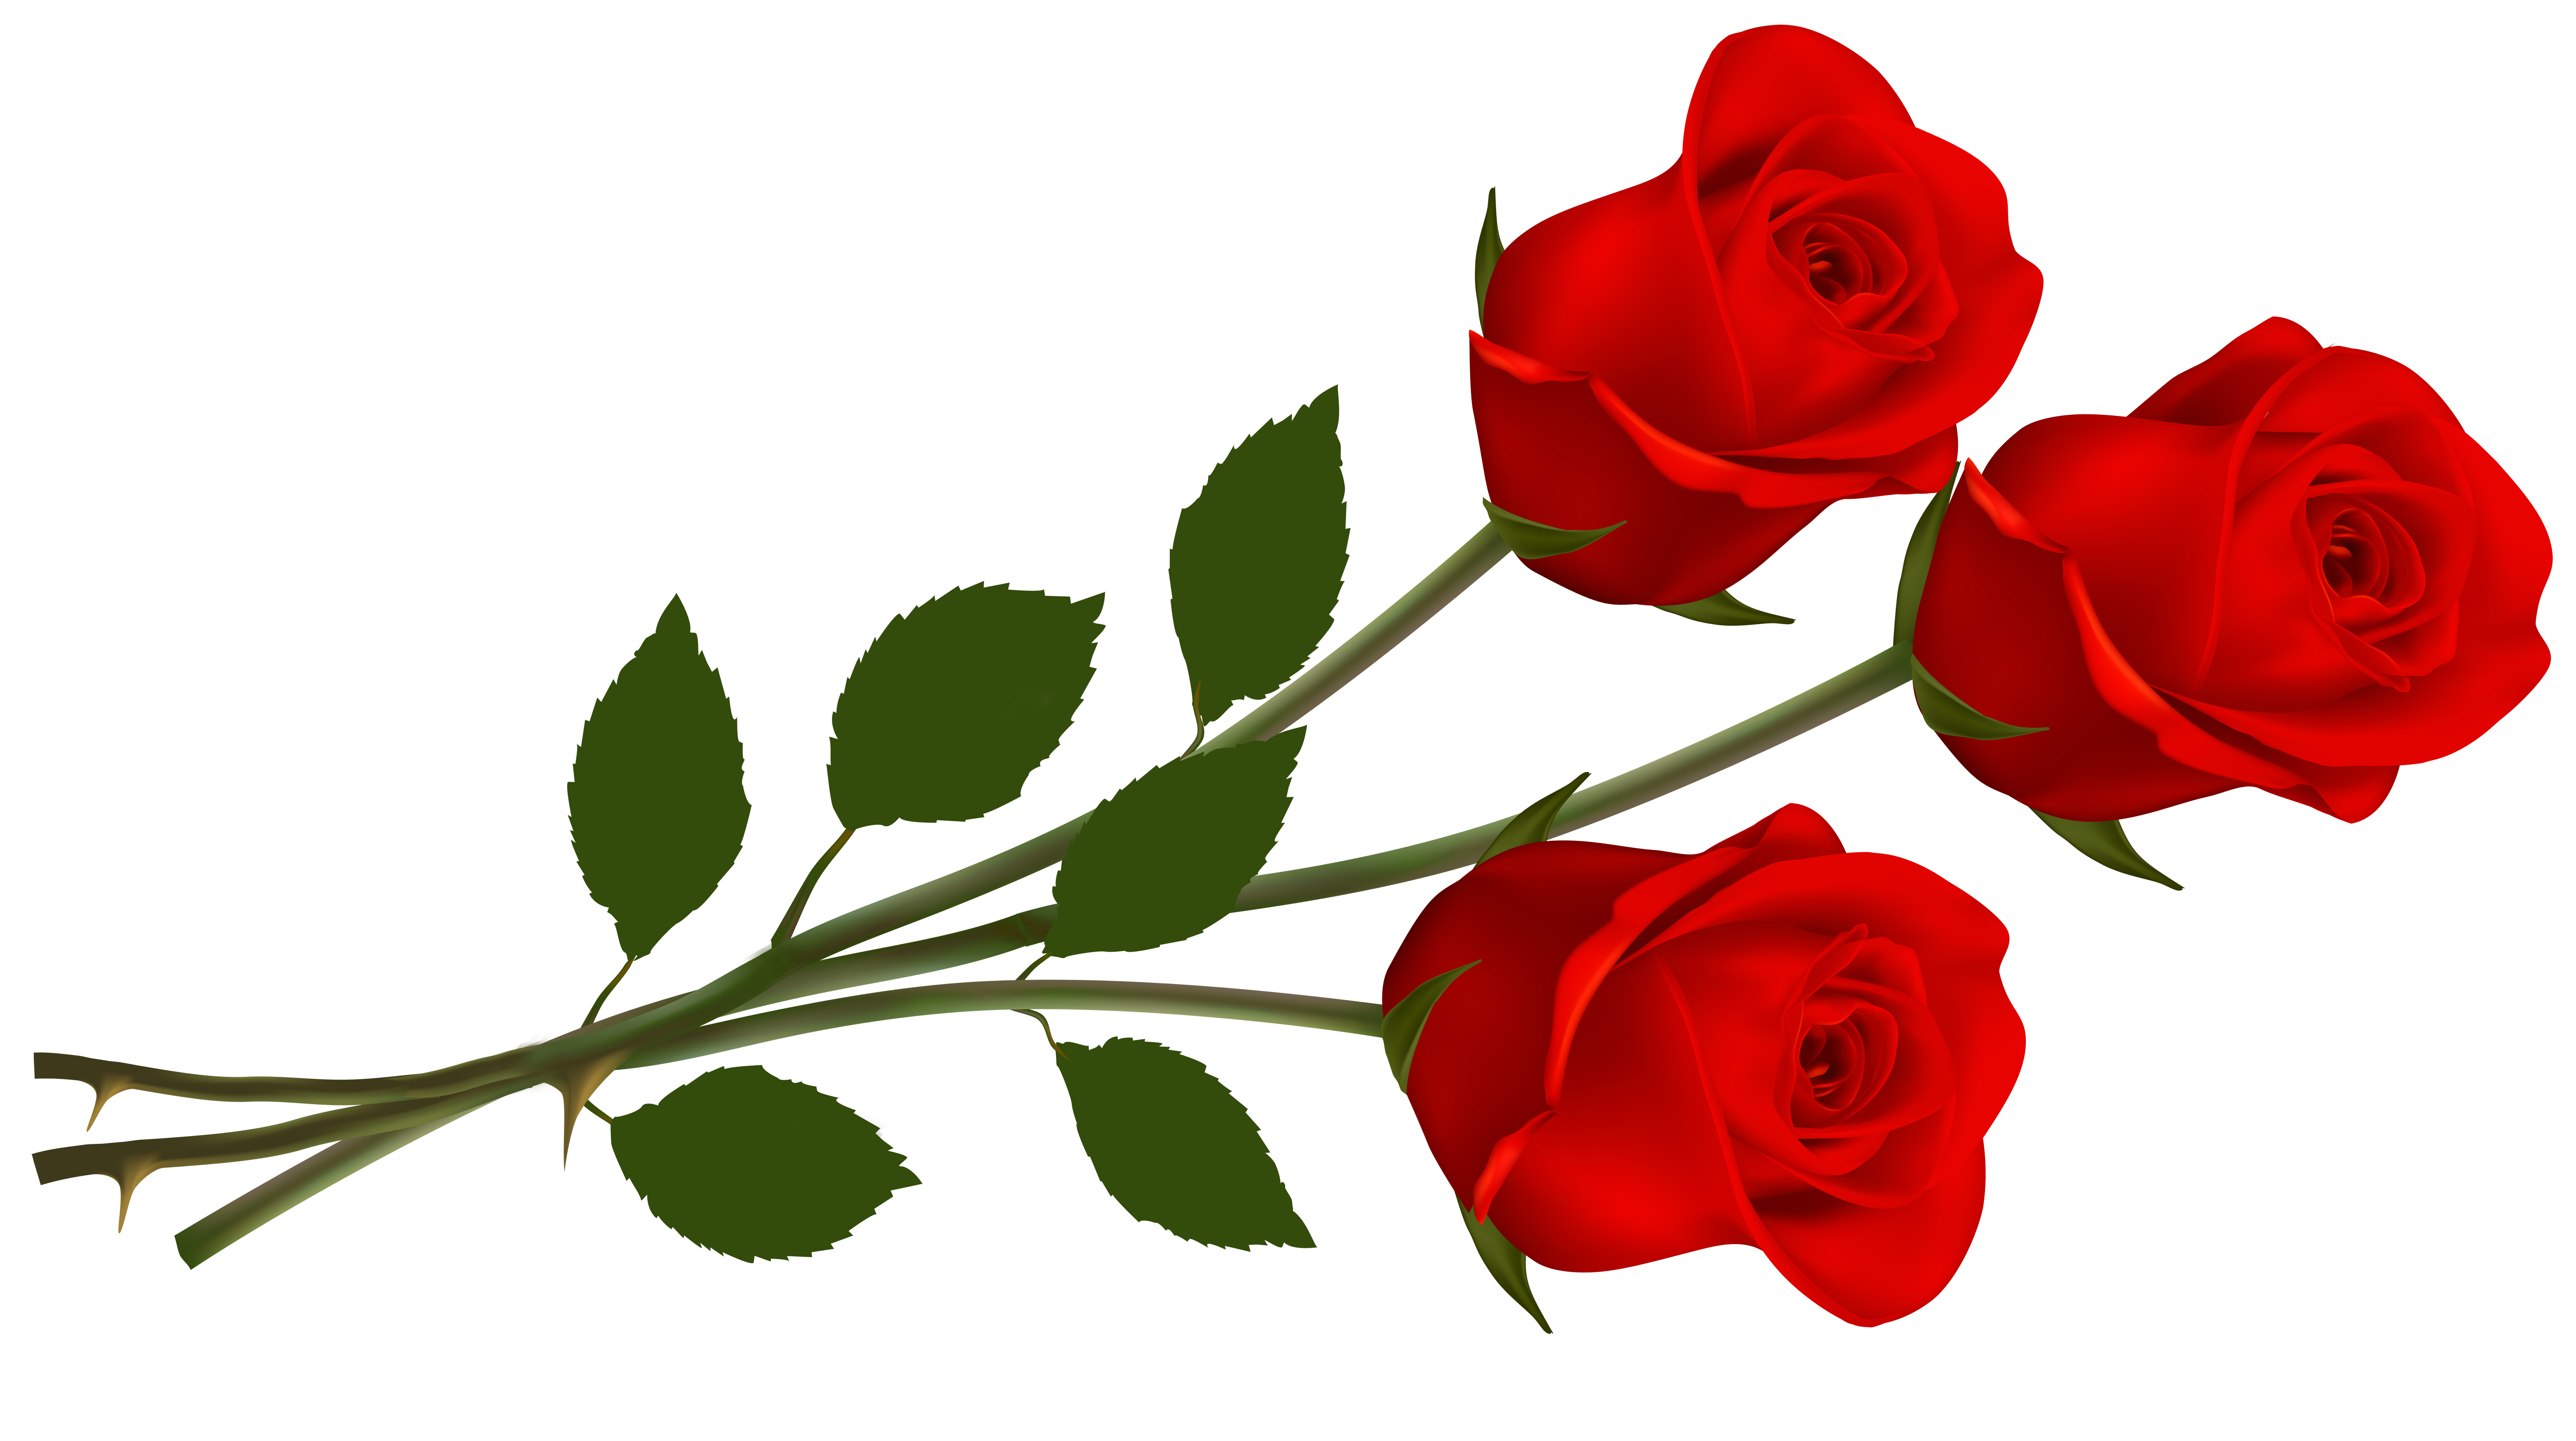 Red Rose clipart #2, Download drawings